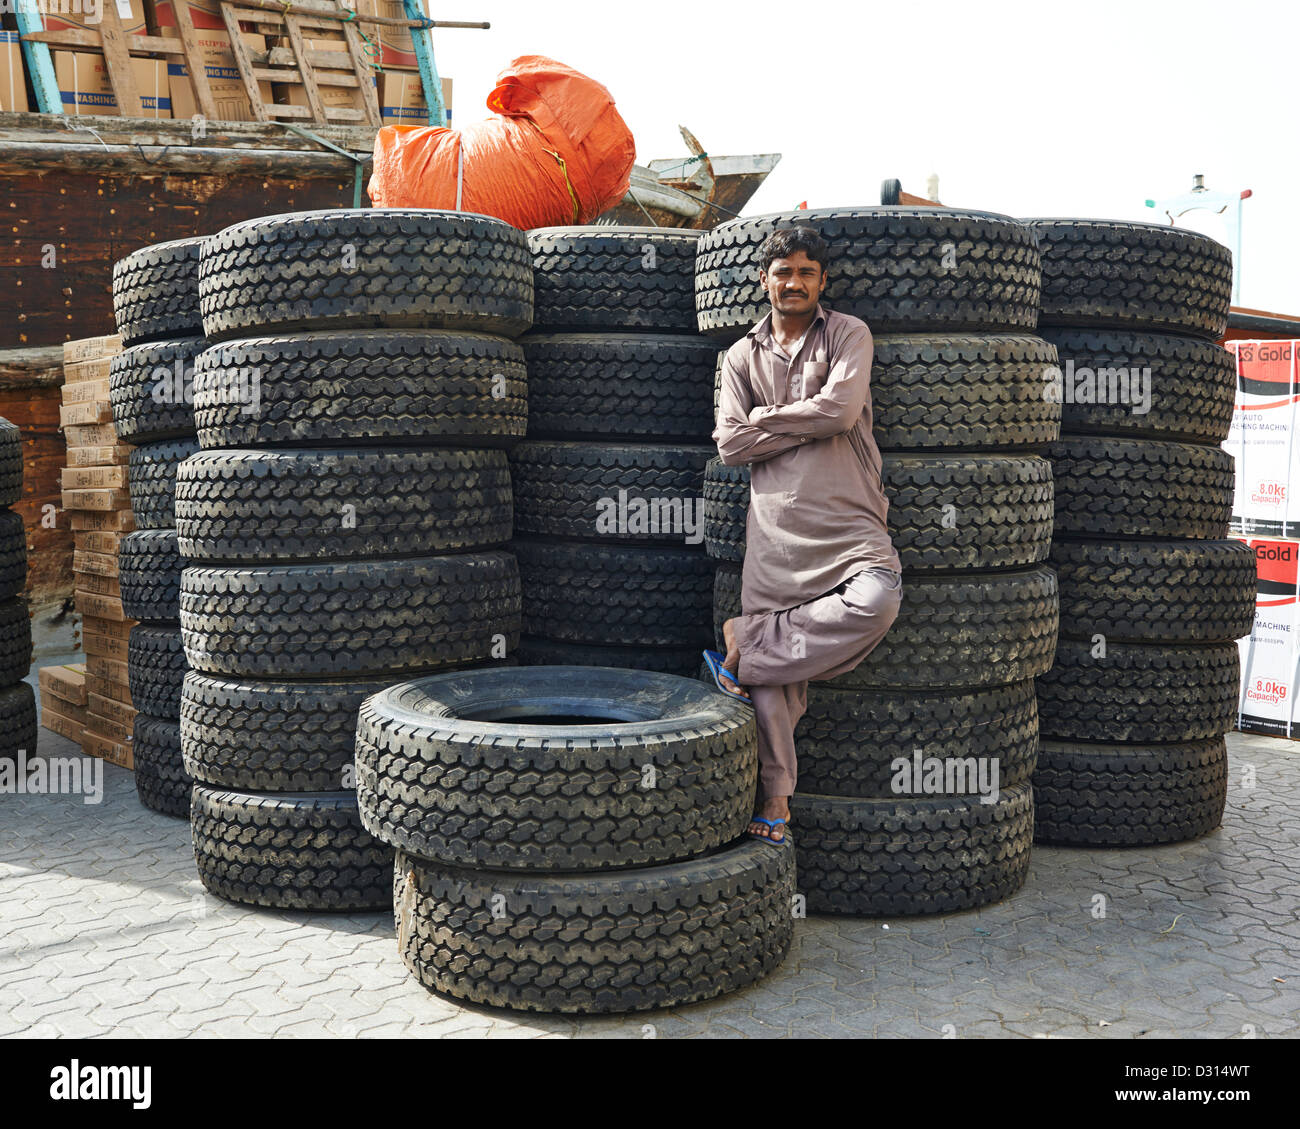 A man crosses his arm and raises his leg in front of a huge stack of tires - Stock Image